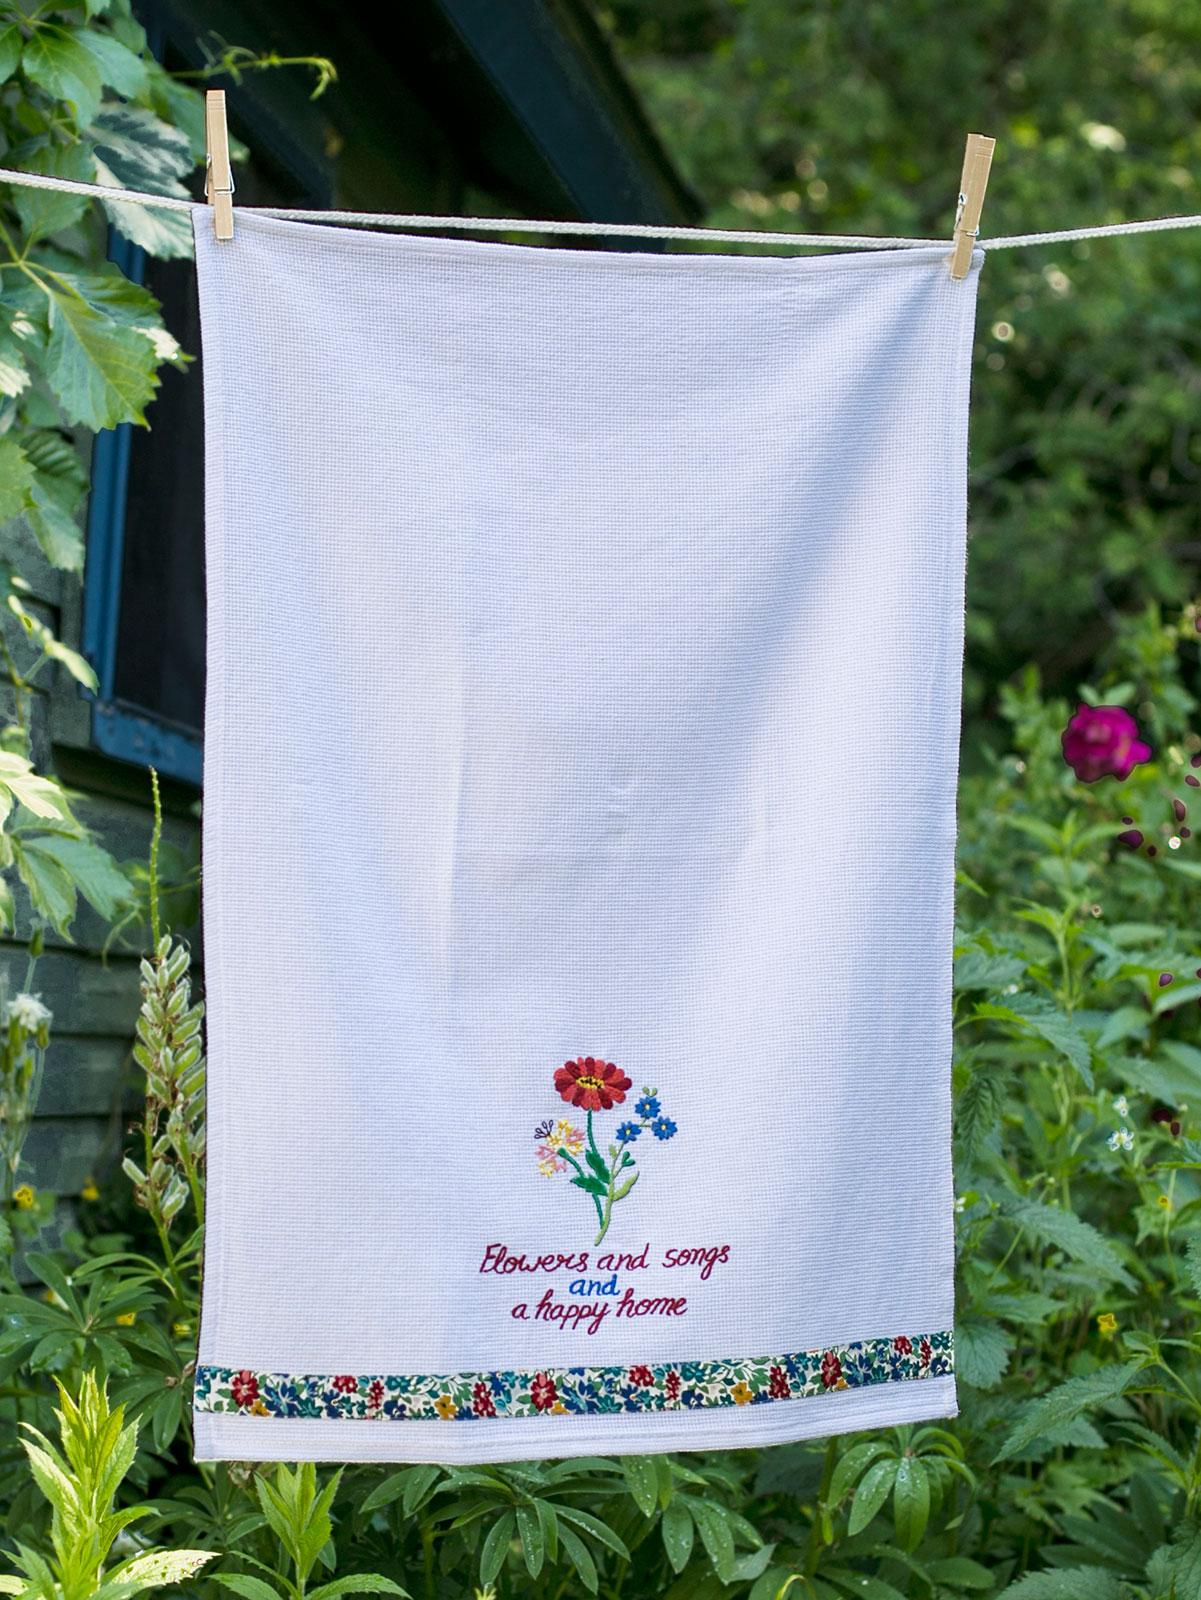 Patty's Picnic Embroidered Tea Towel